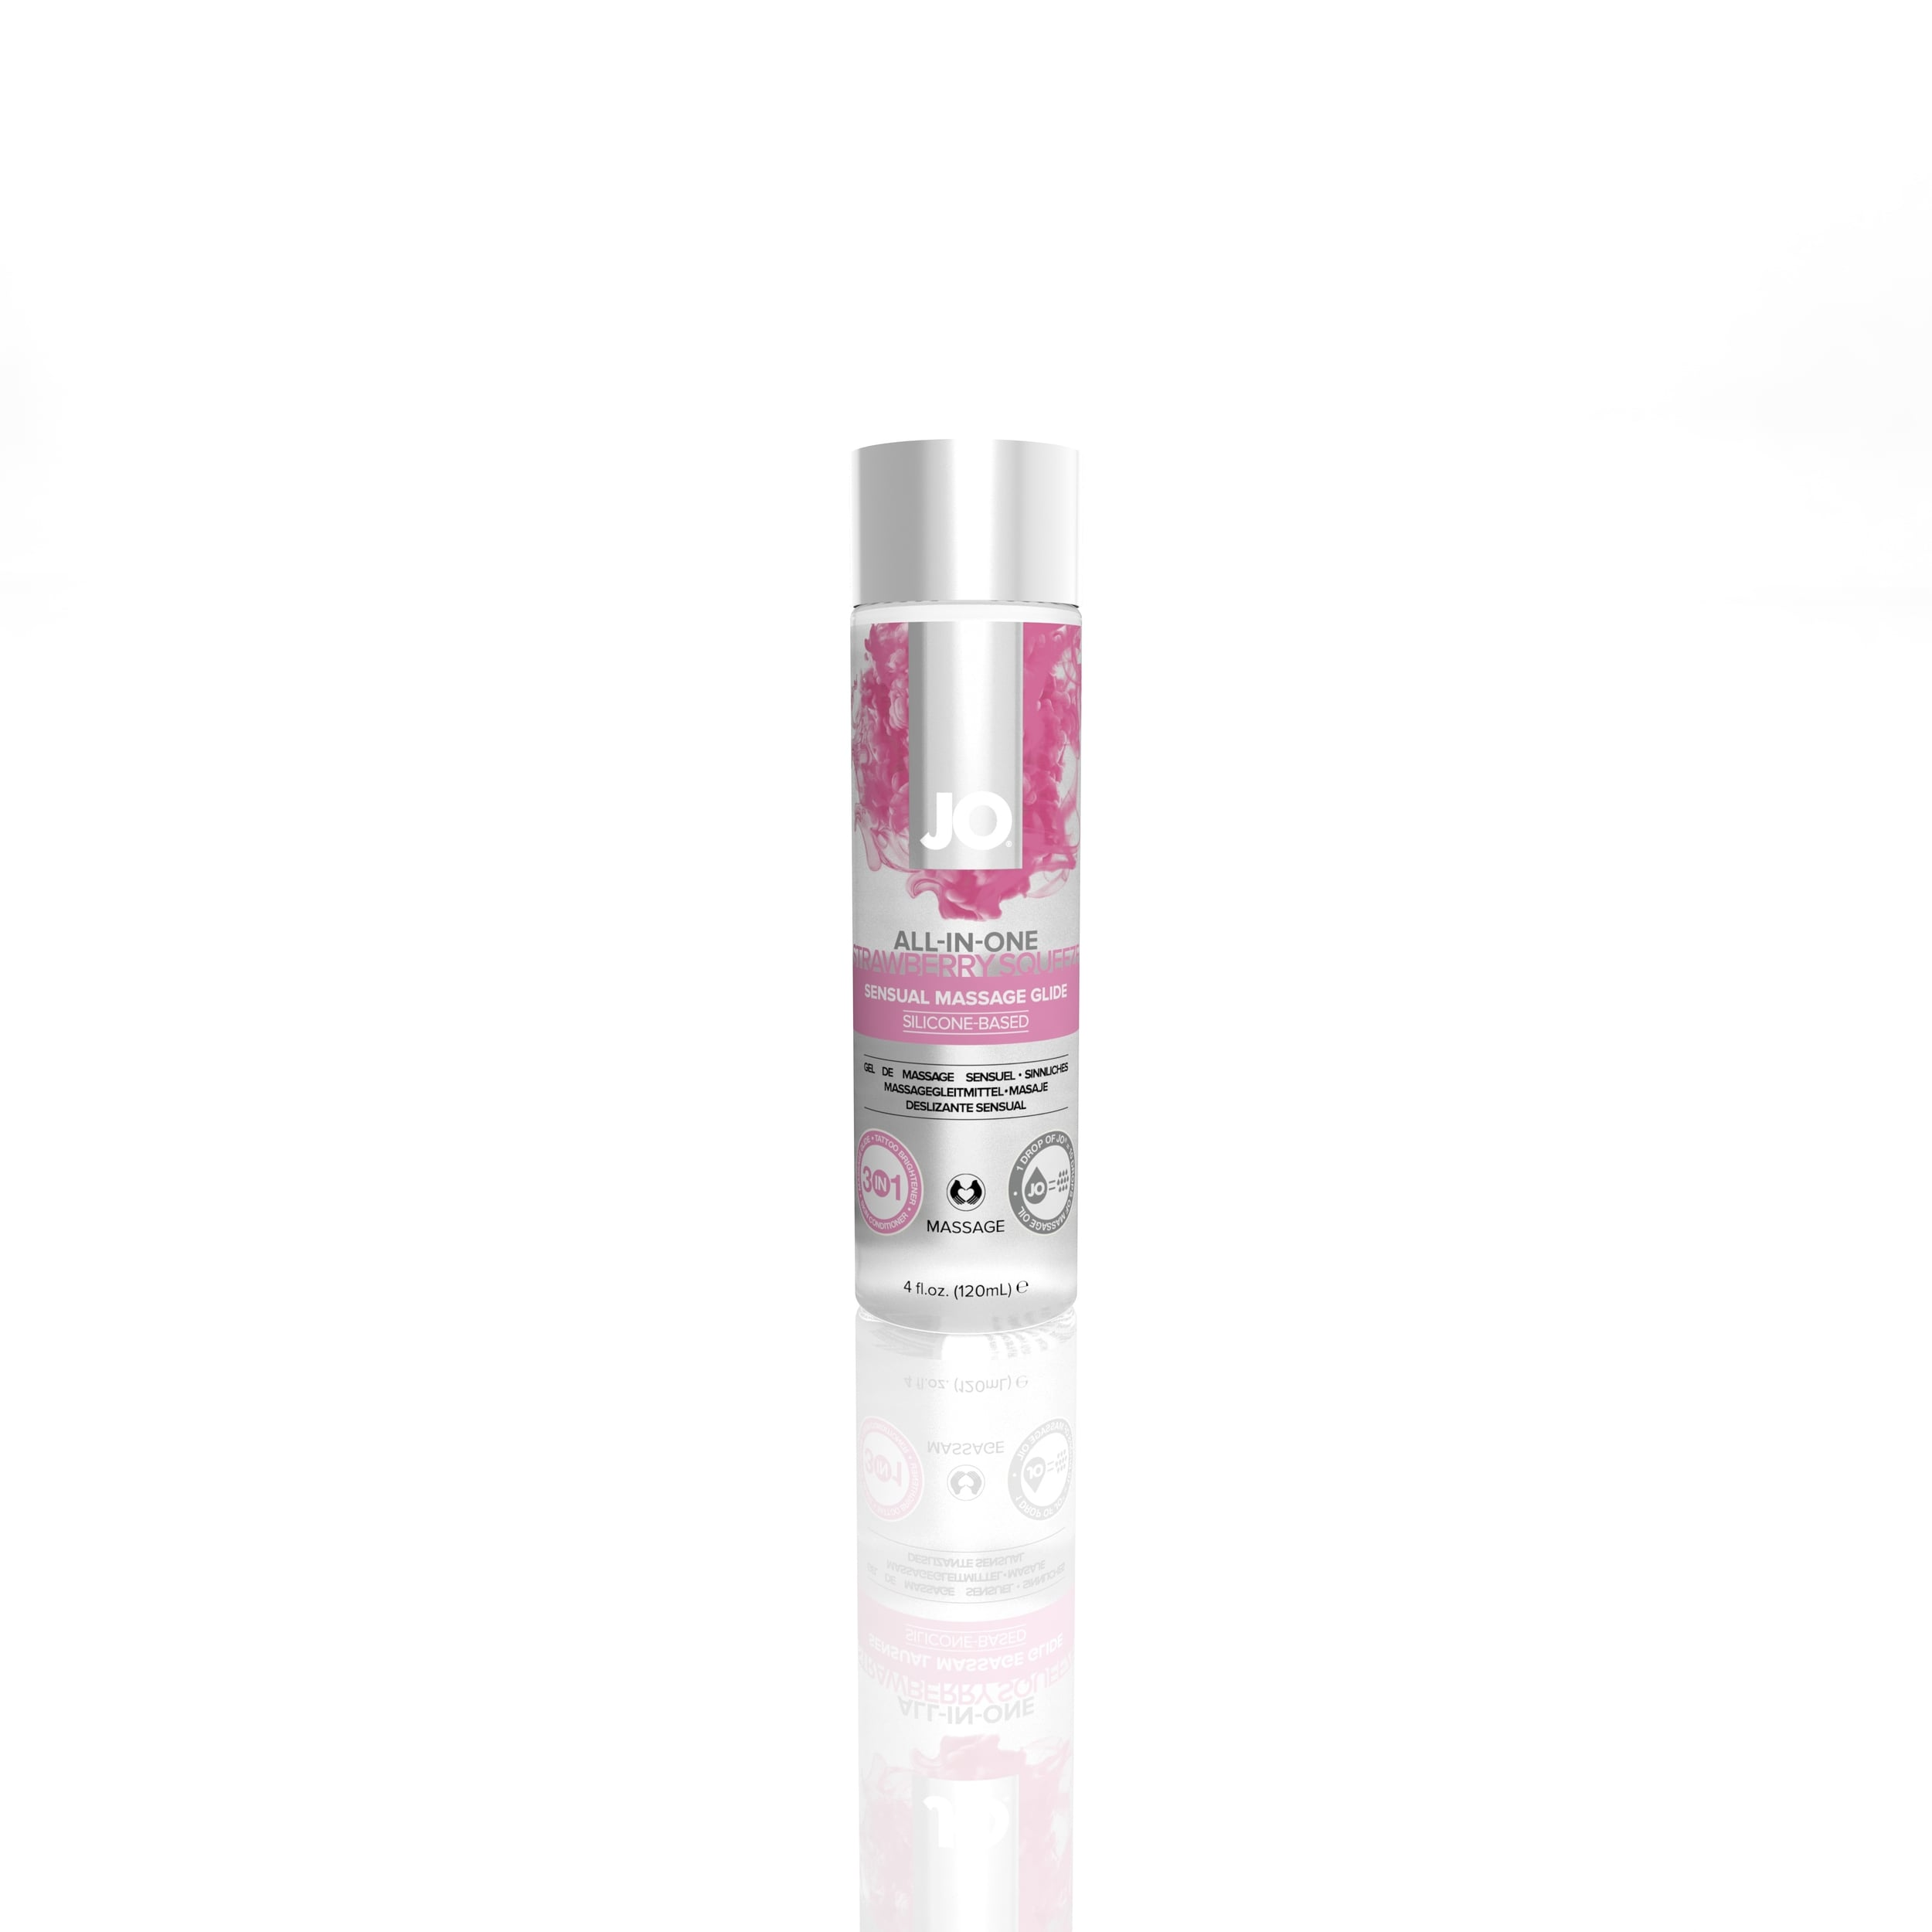 40438 - JO ALL-IN-ONE SENSUAL MASSAGE GLIDE -  4fl.oz120mL - STRAWBERRY.jpg